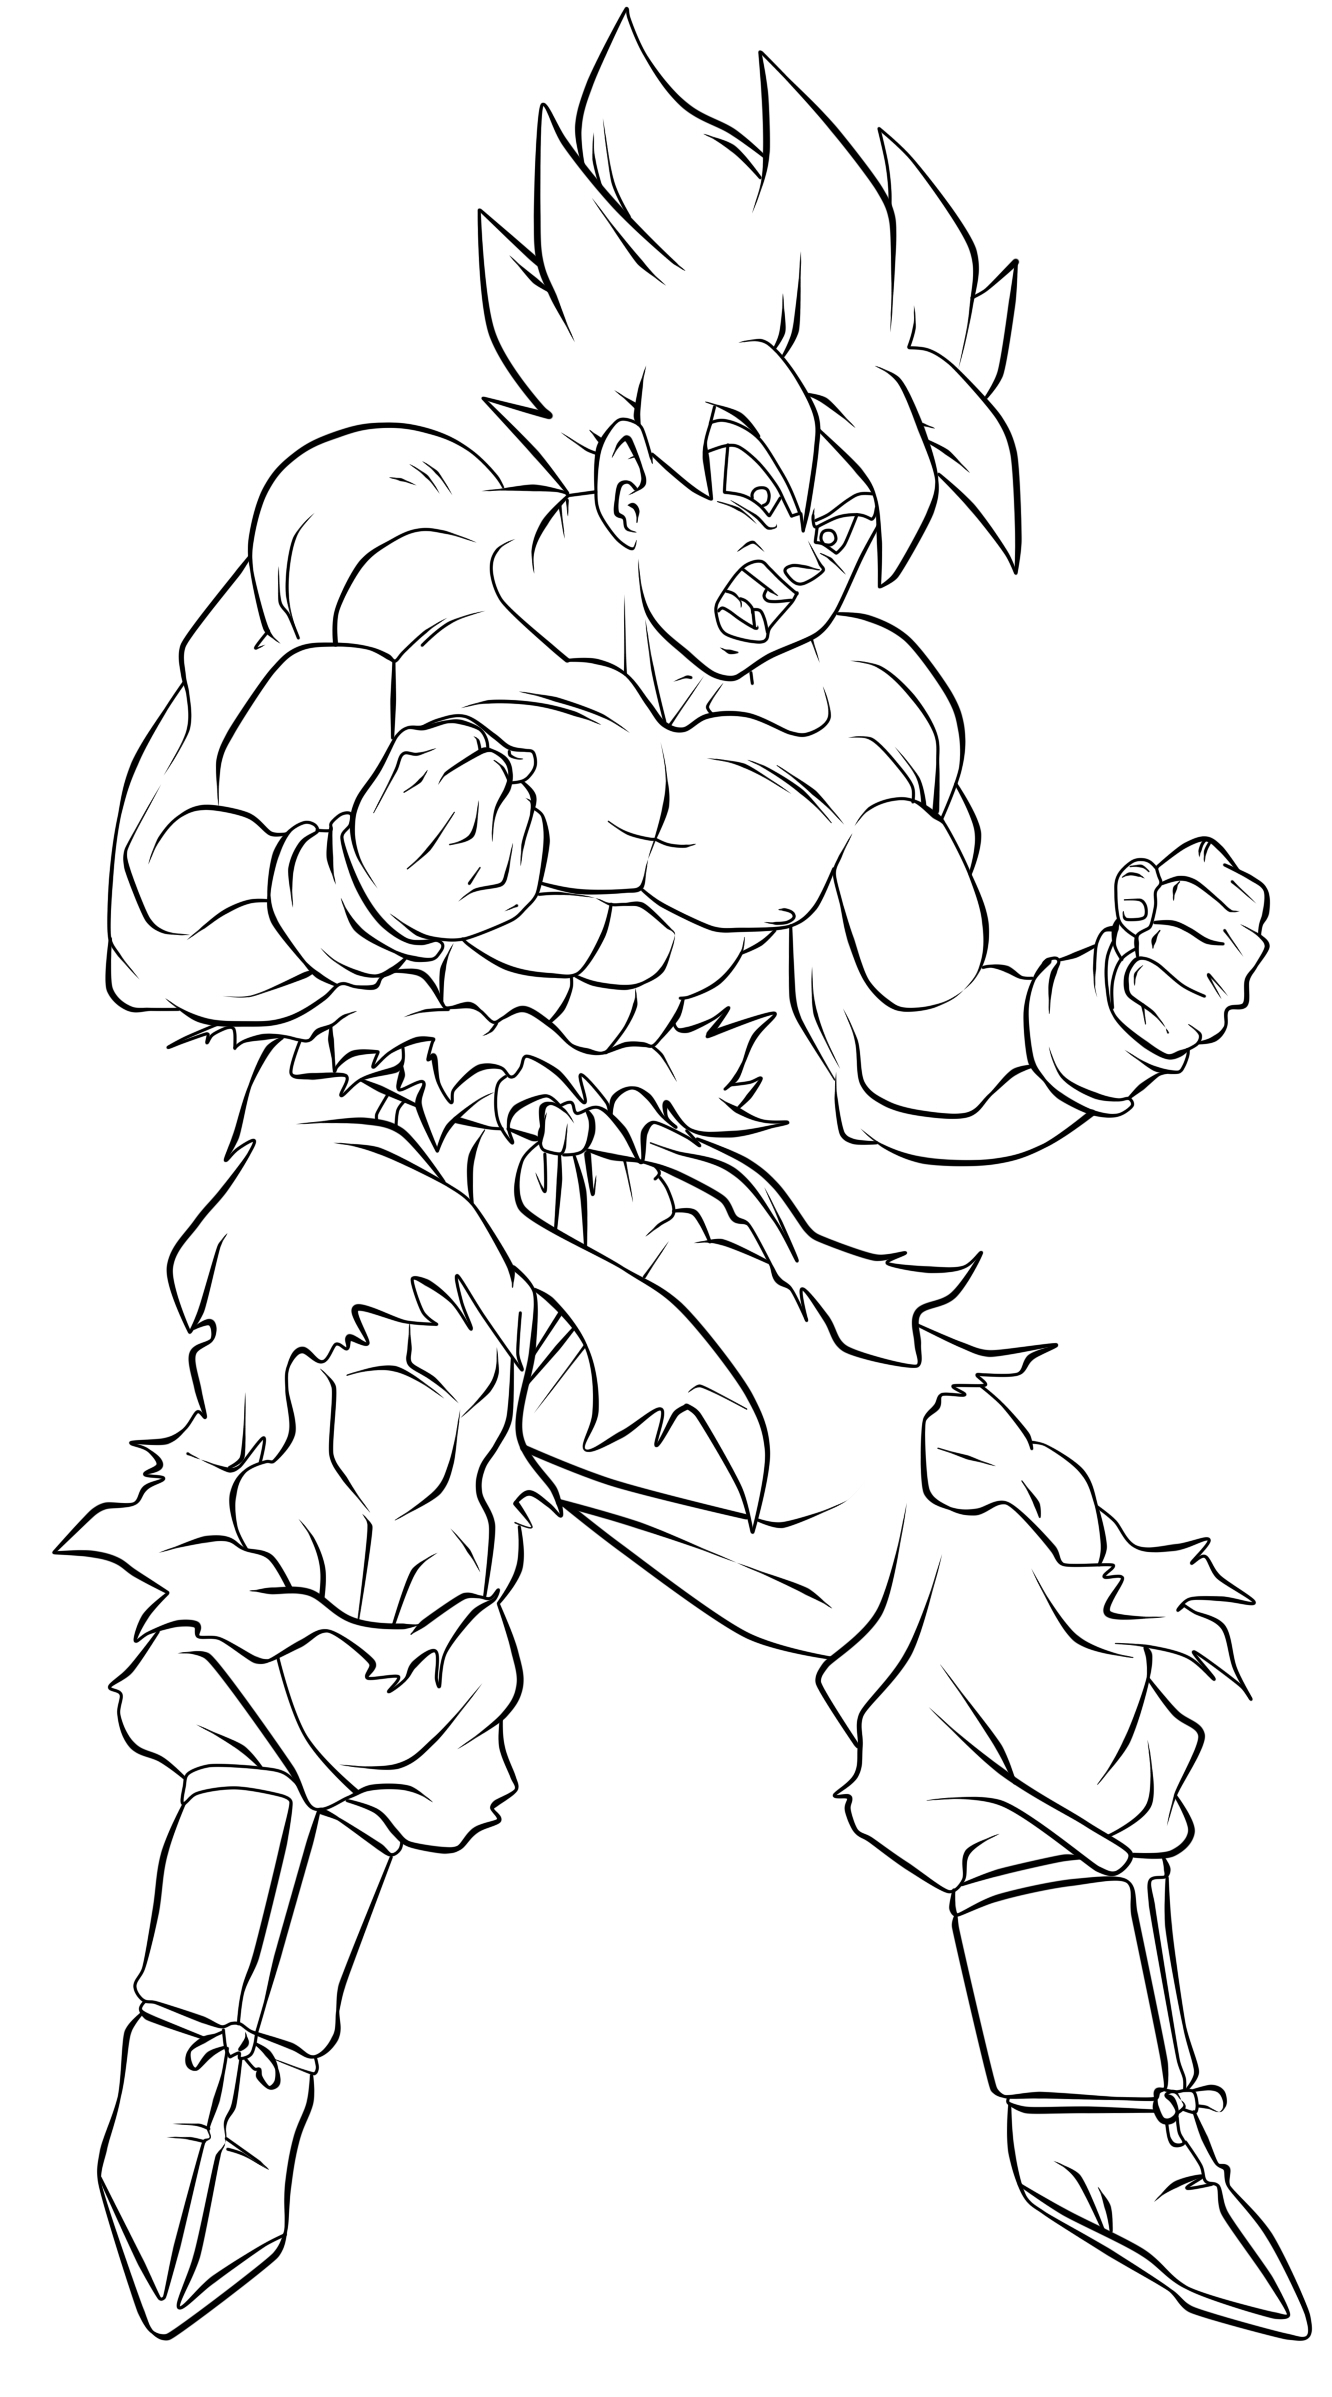 coloring pictures of goku dragon ball z coloring pages goku super saiyan 5 at coloring goku pictures of